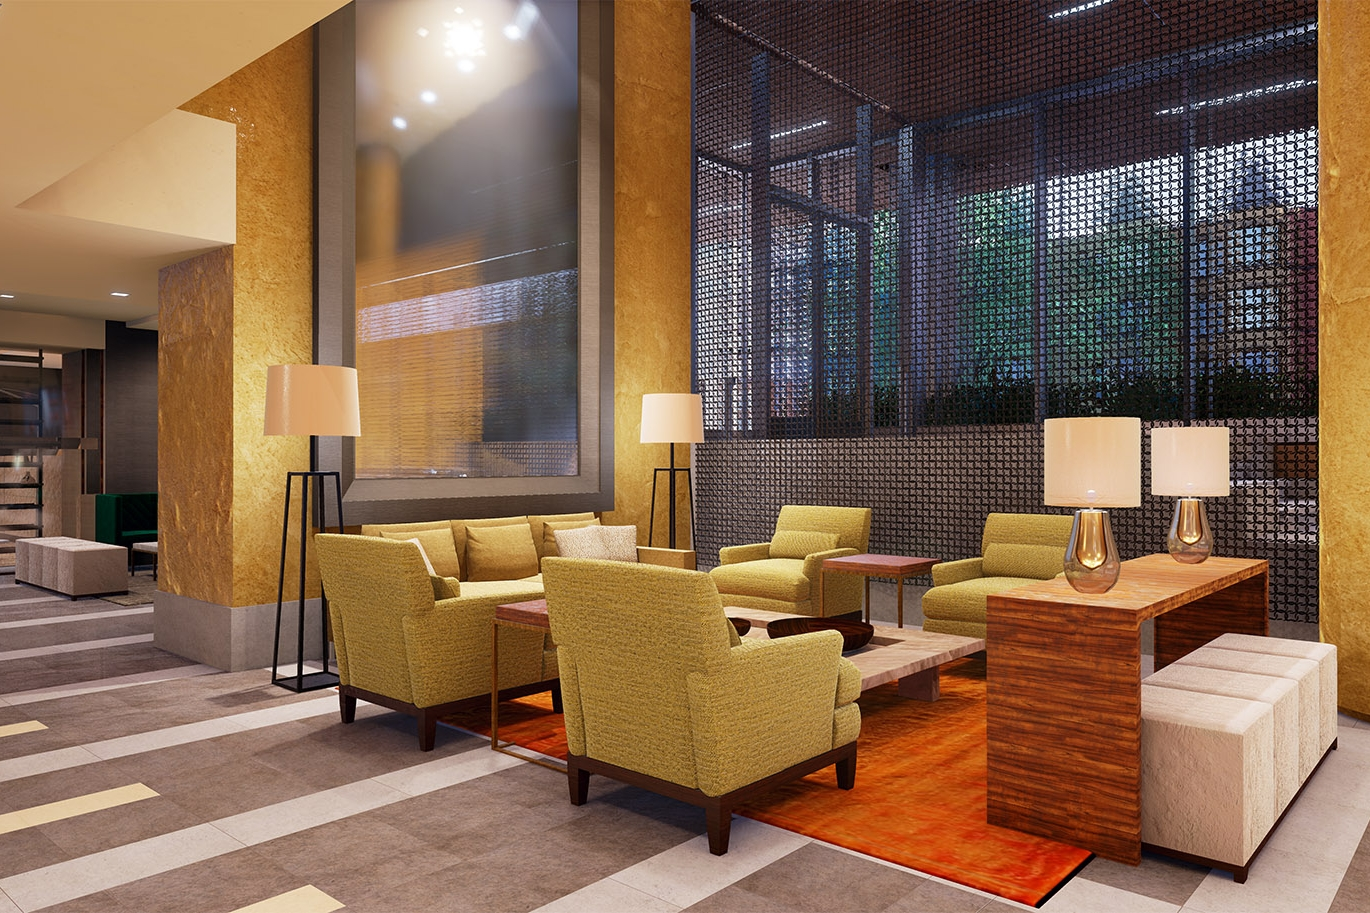 Luxury living at 2501 - 3D Rendering, Animation, VR